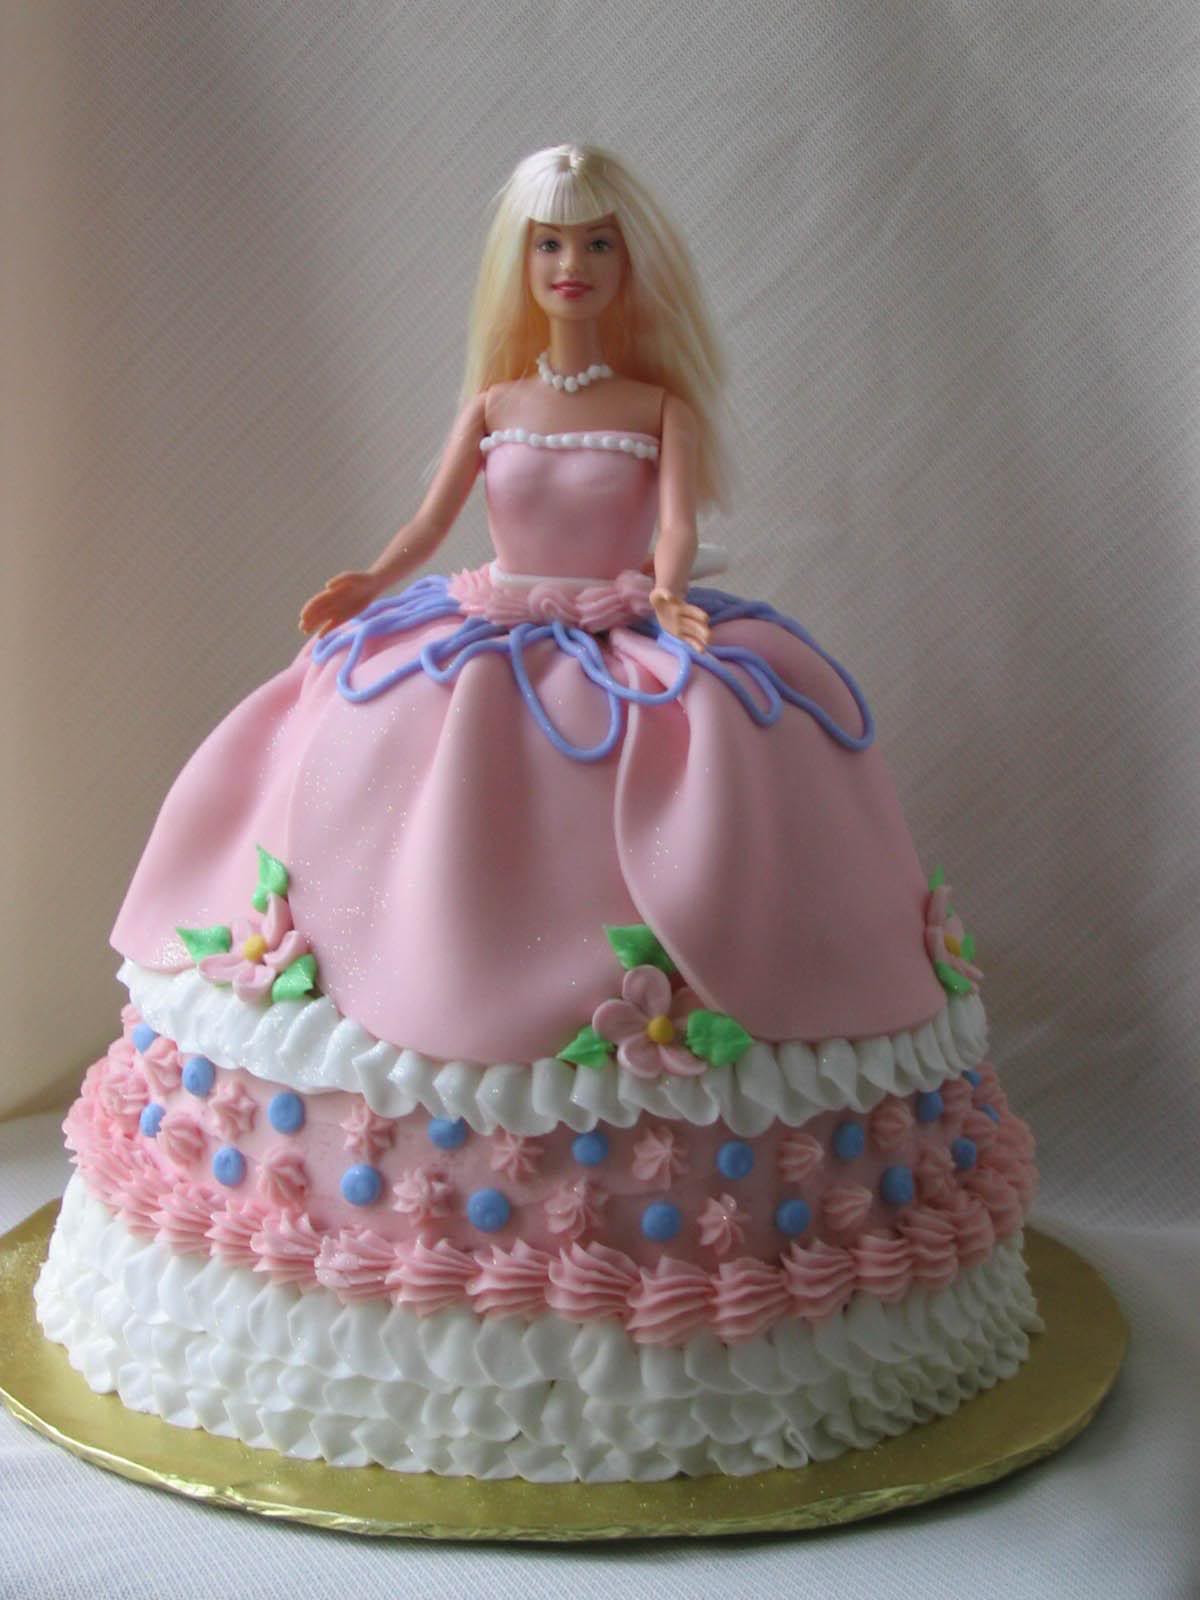 Best ideas about Birthday Cake Pics . Save or Pin Birthday Cake Pink Barbie Birthday Cakes Now.